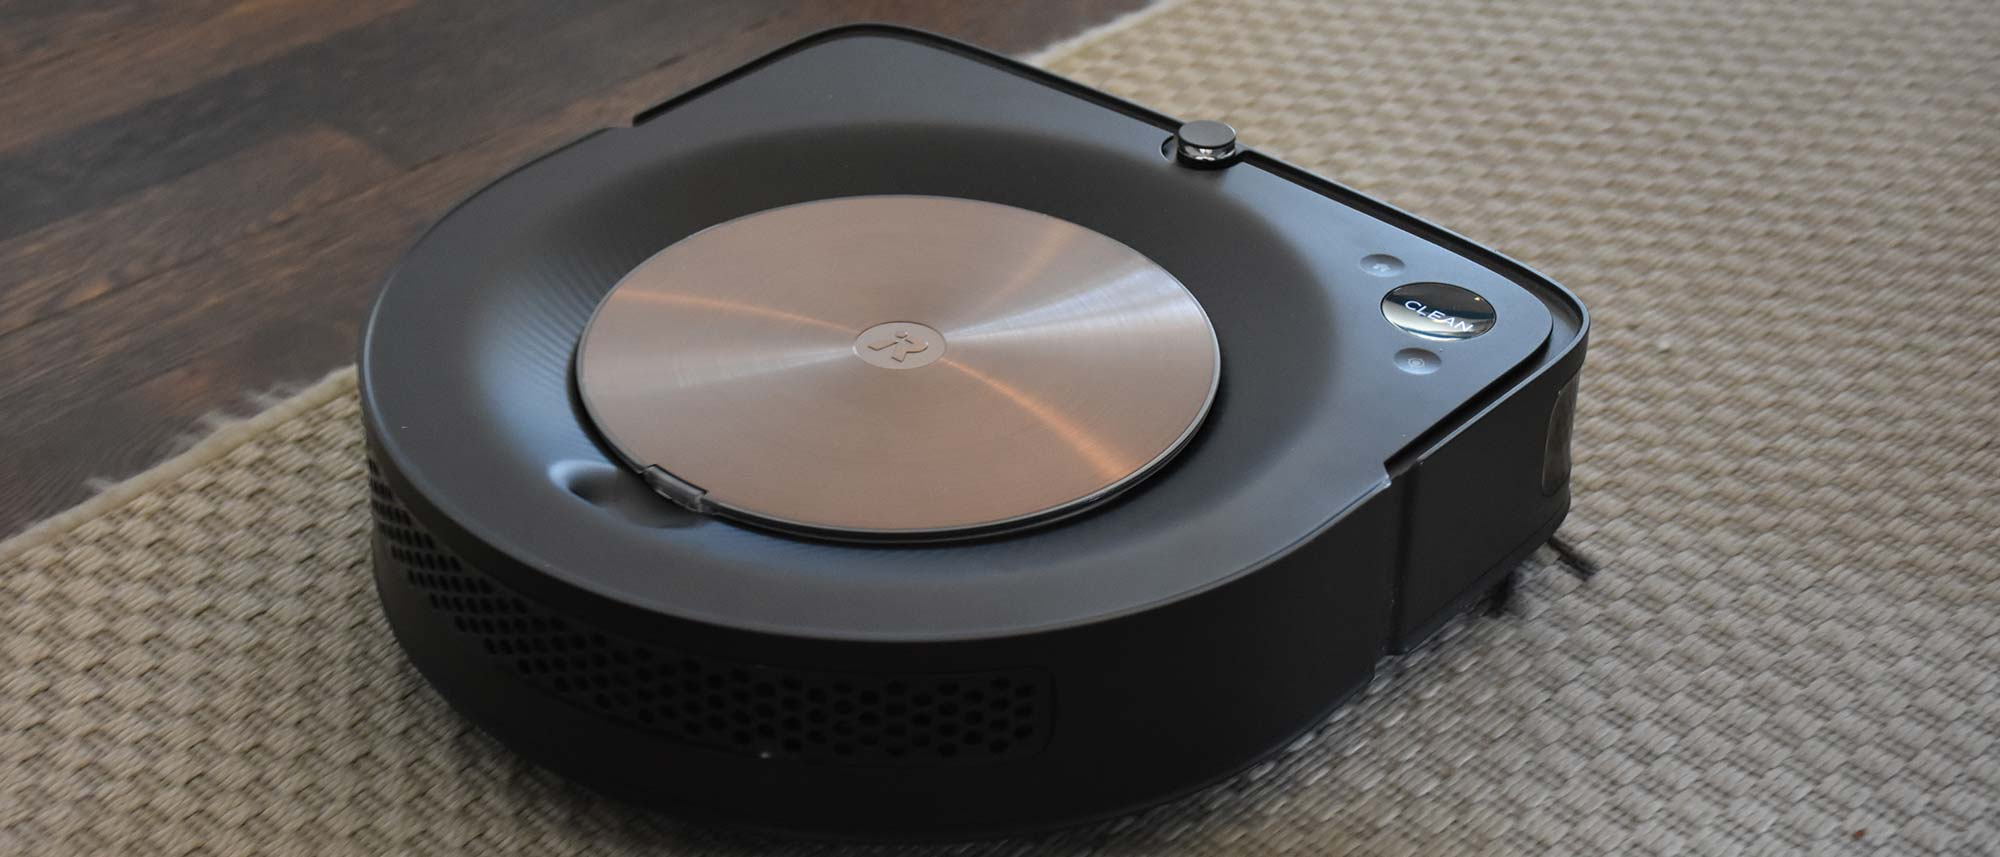 most expensive robot vacuum cleaner